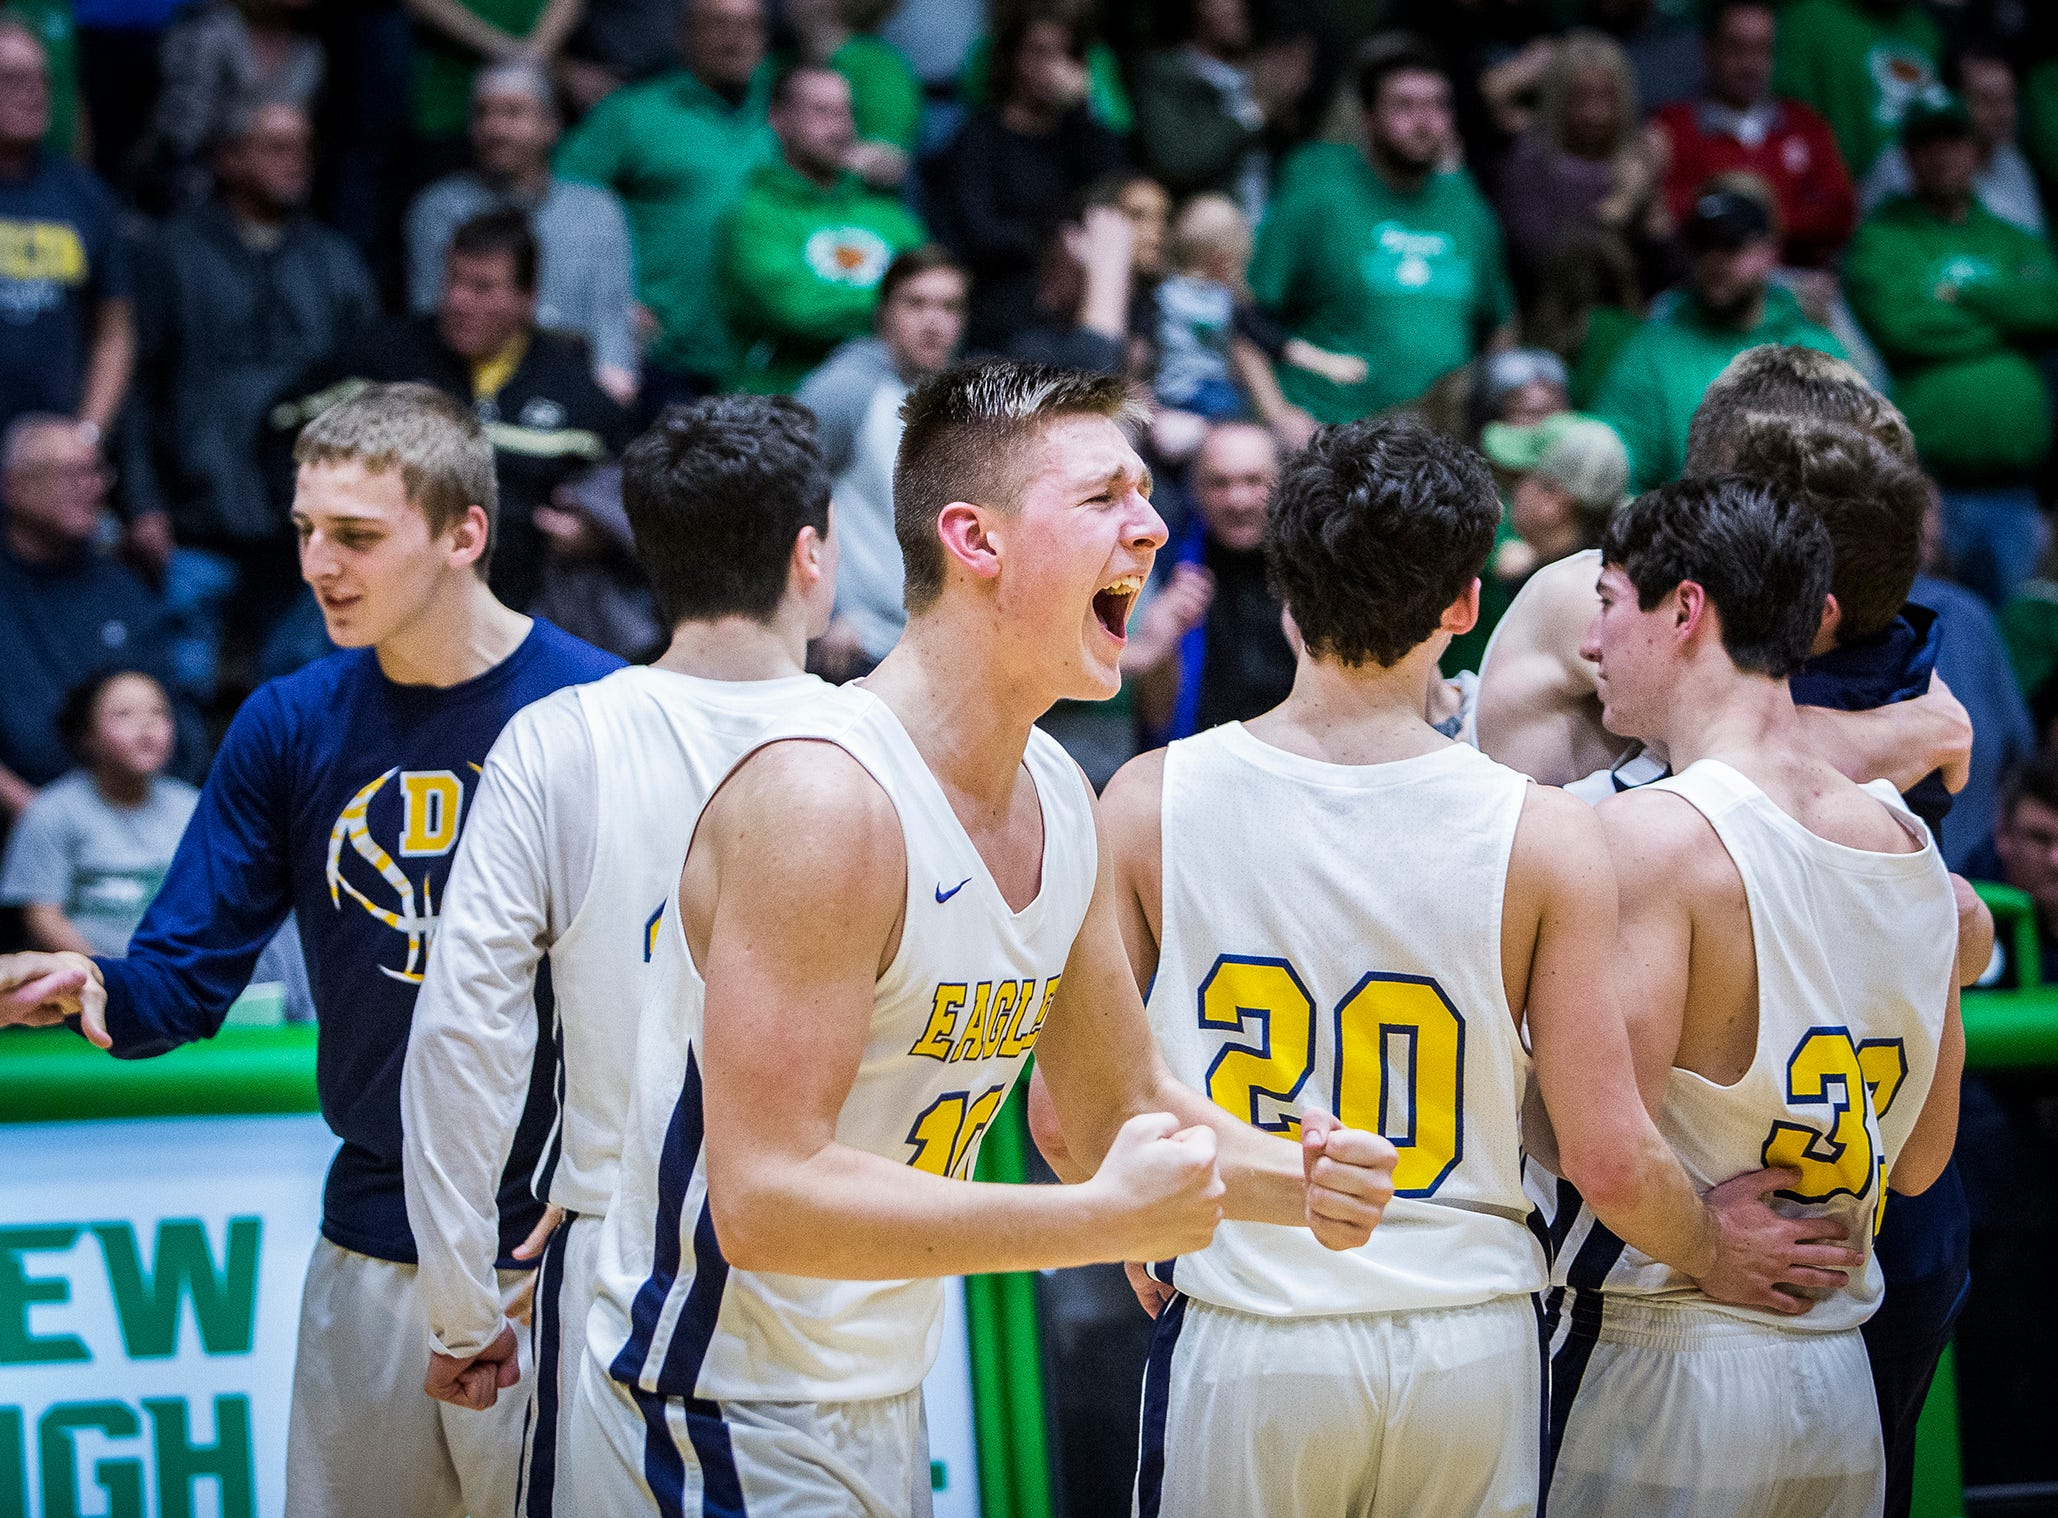 Delta's Tyler Wilburn reacts after the Eagles defeated New Castle 59-55 to win their first sectional title since 2011.